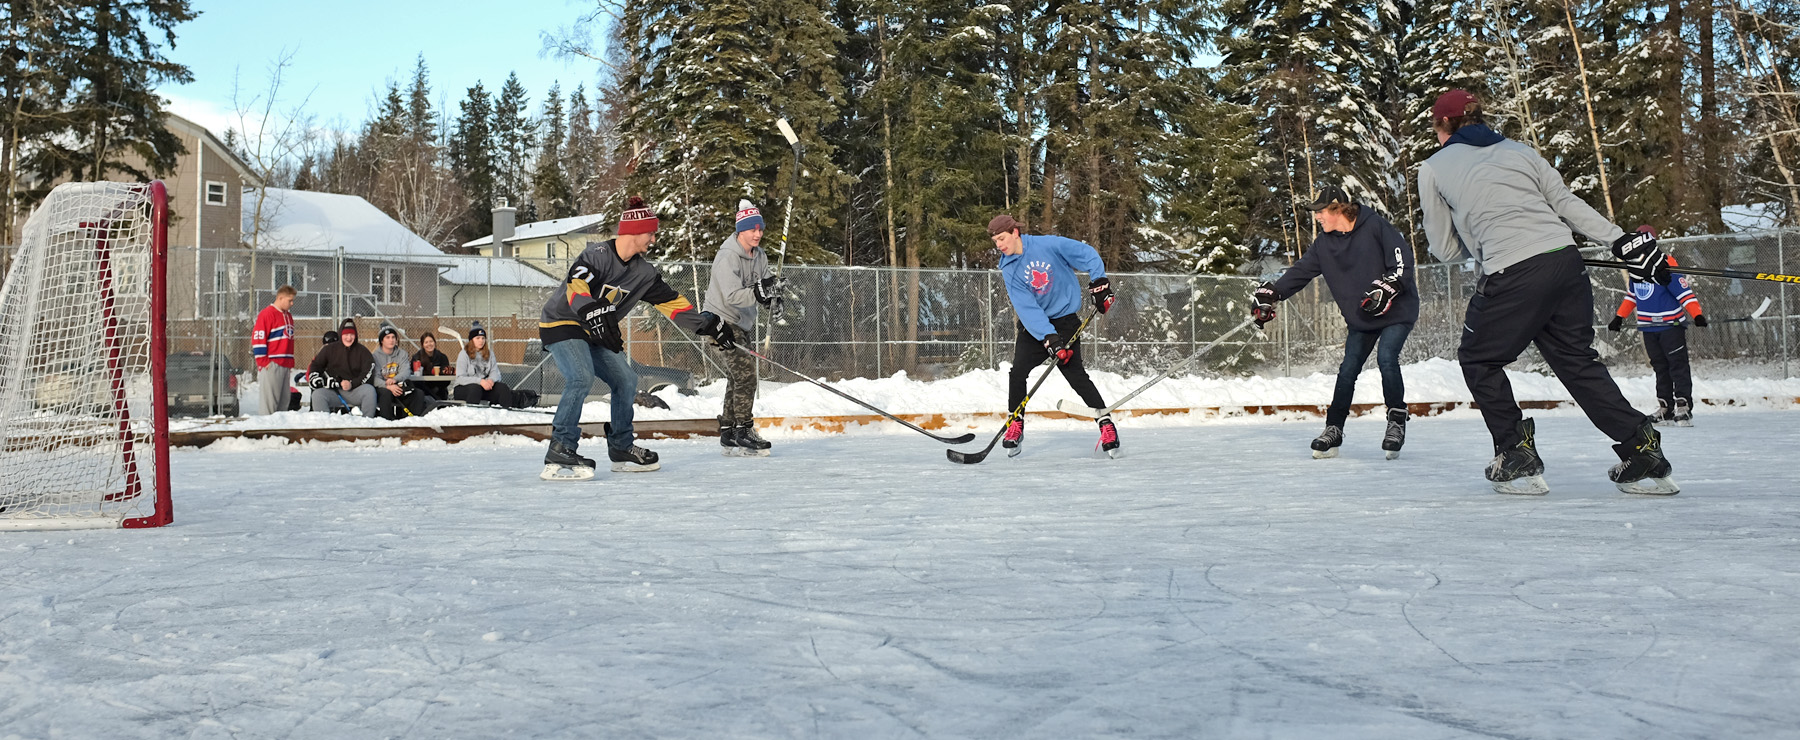 People playing hockey in an outdoor rink